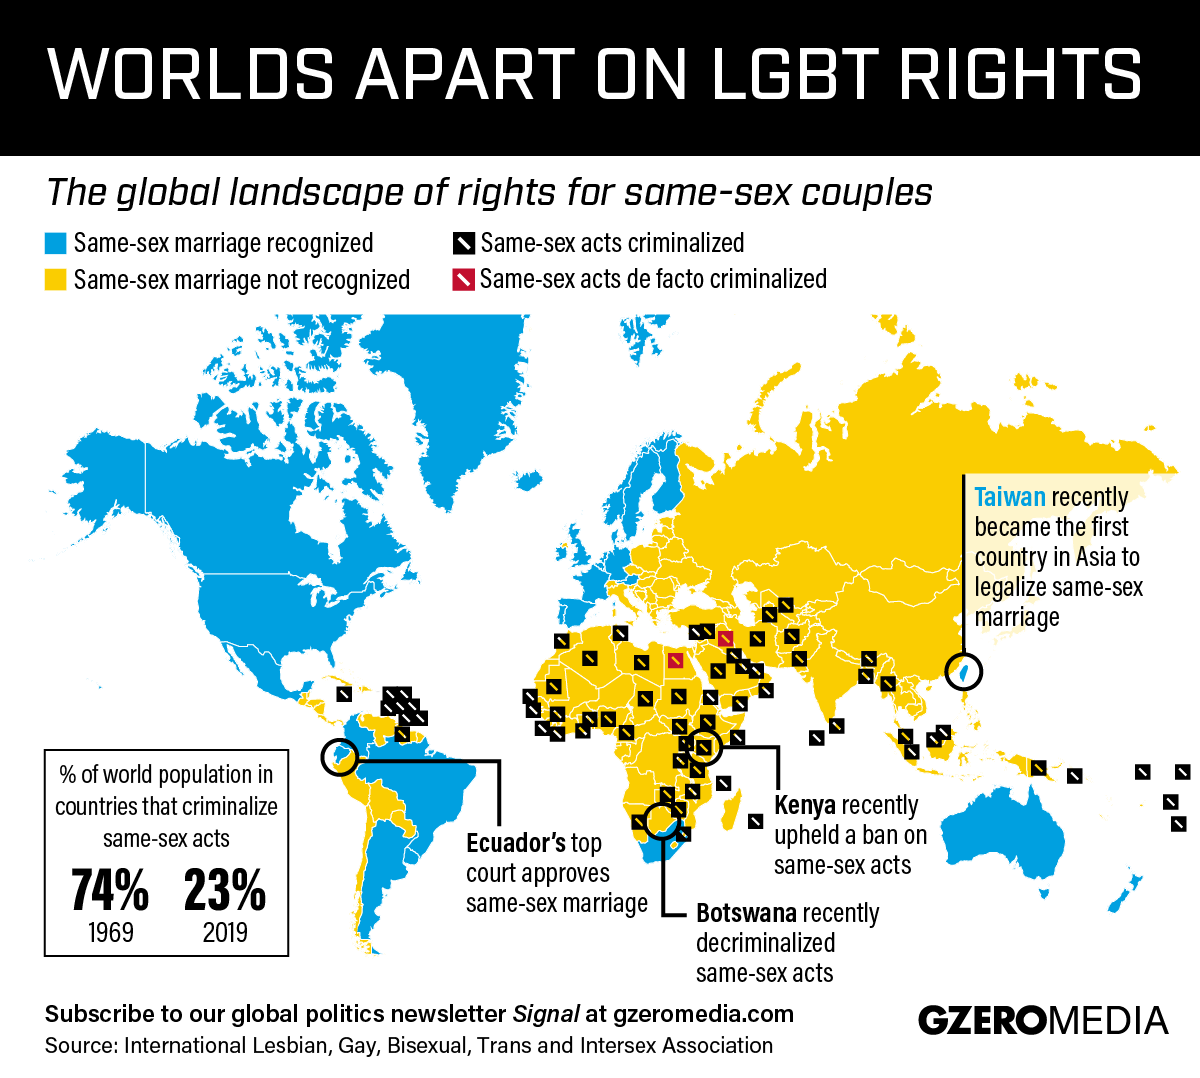 Graphic Truth: Worlds Apart on LGBT Rights